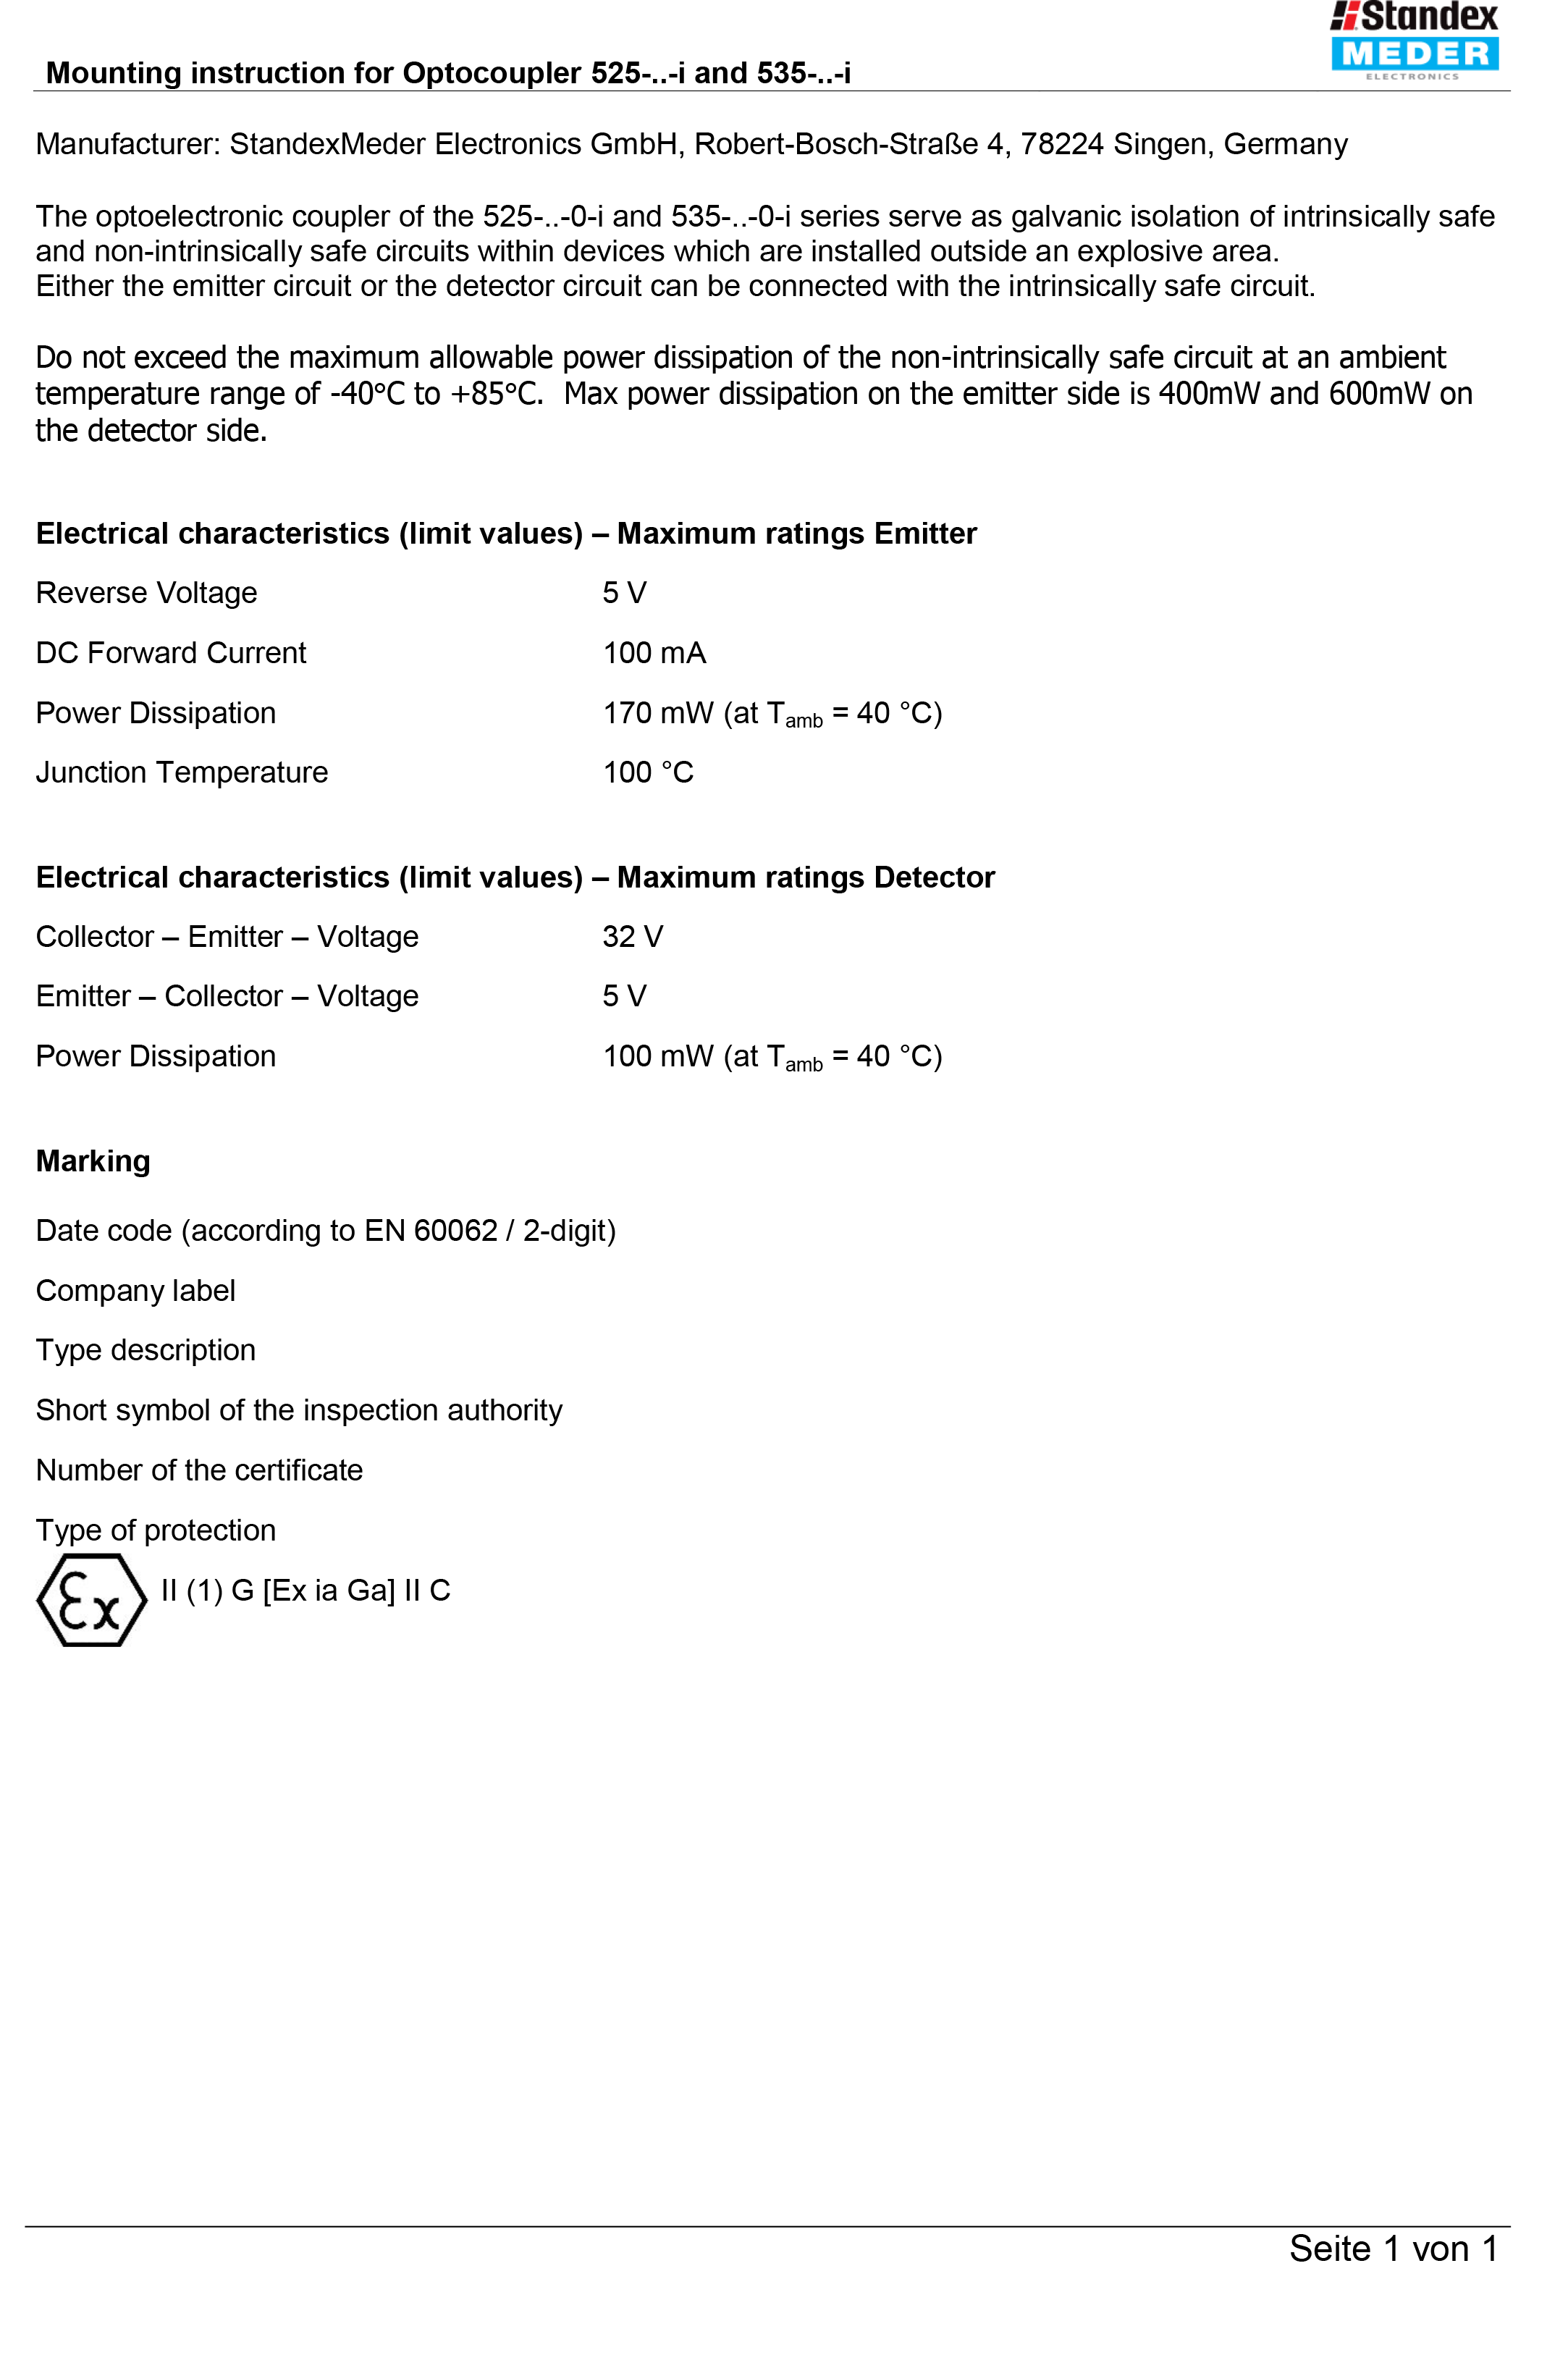 Mounting Instructions for Optocoupler Series 525 & 535 - Standex ...